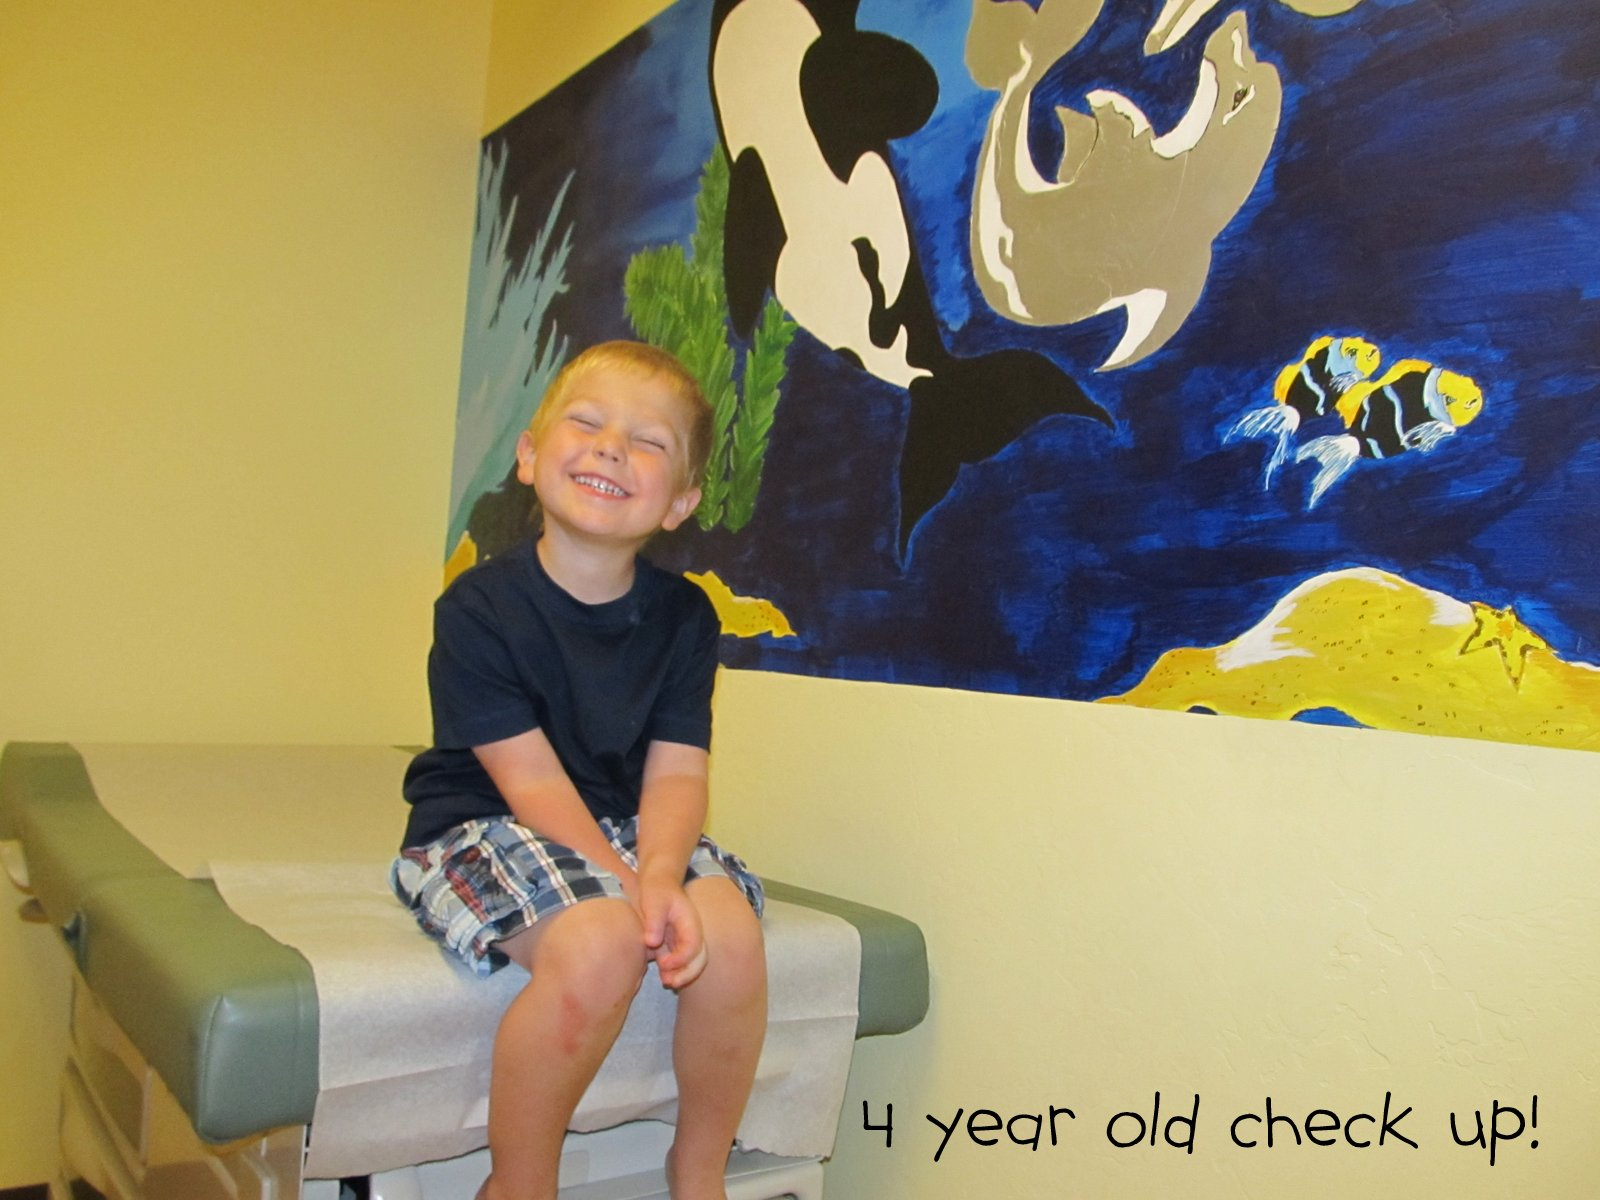 """Charlie had his 4 year old check up 2 days ago. He was super excited  actually to go to the doctor for his very own appointment! He said  excitedly, """"just for ..."""